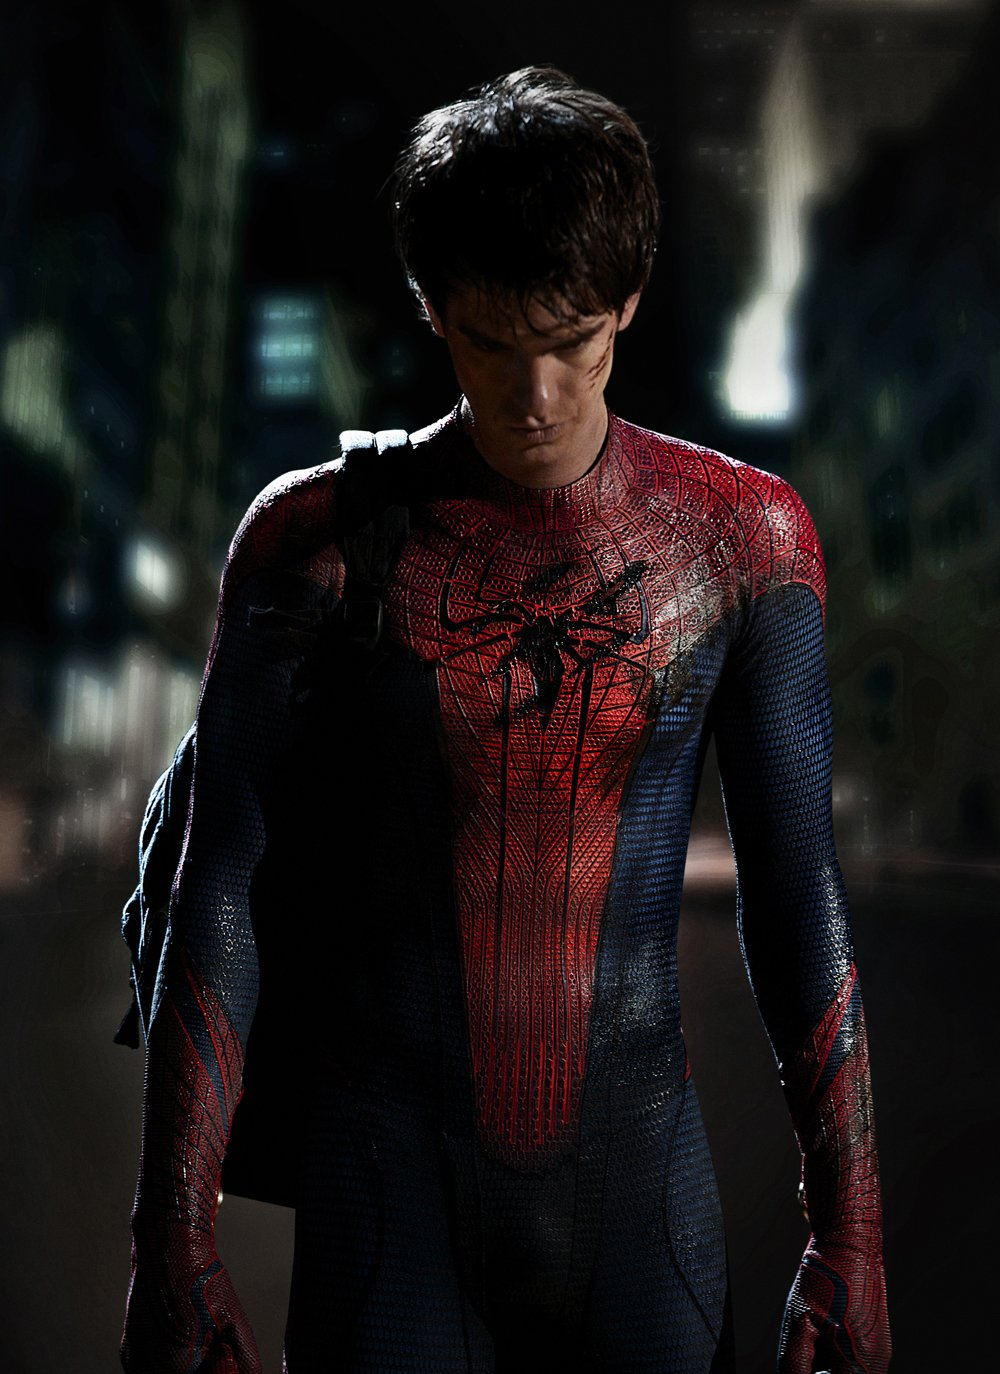 Andrew Garfield is The Amazing Spider-man